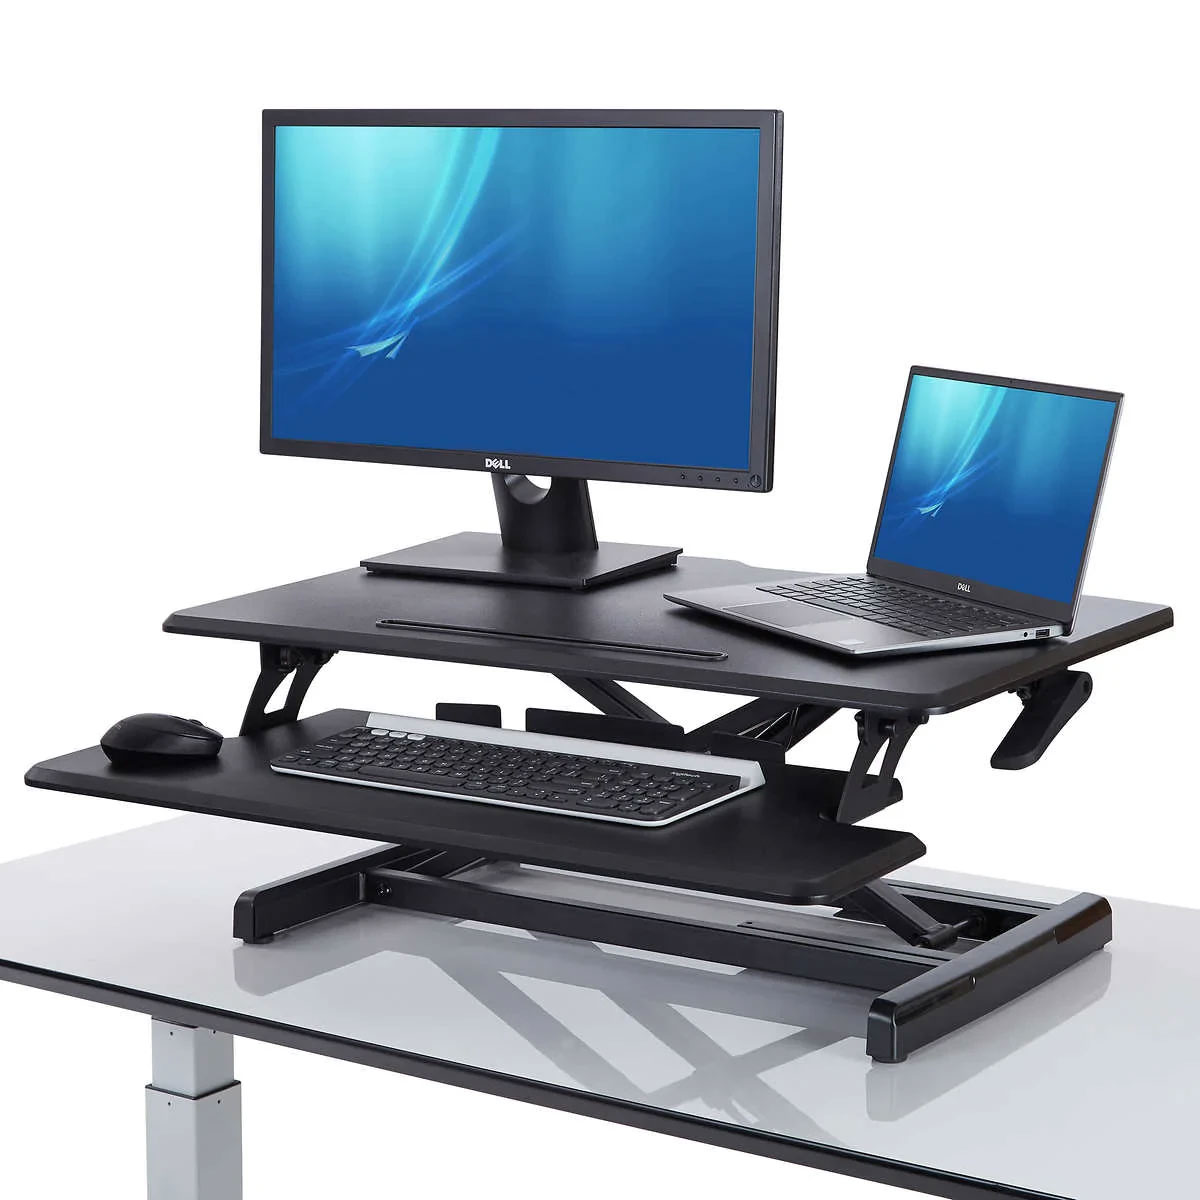 SEVILLE CLASSICS AirLIFT Pro Desk Riser-for Home Office Sit Stand OPEN BOX